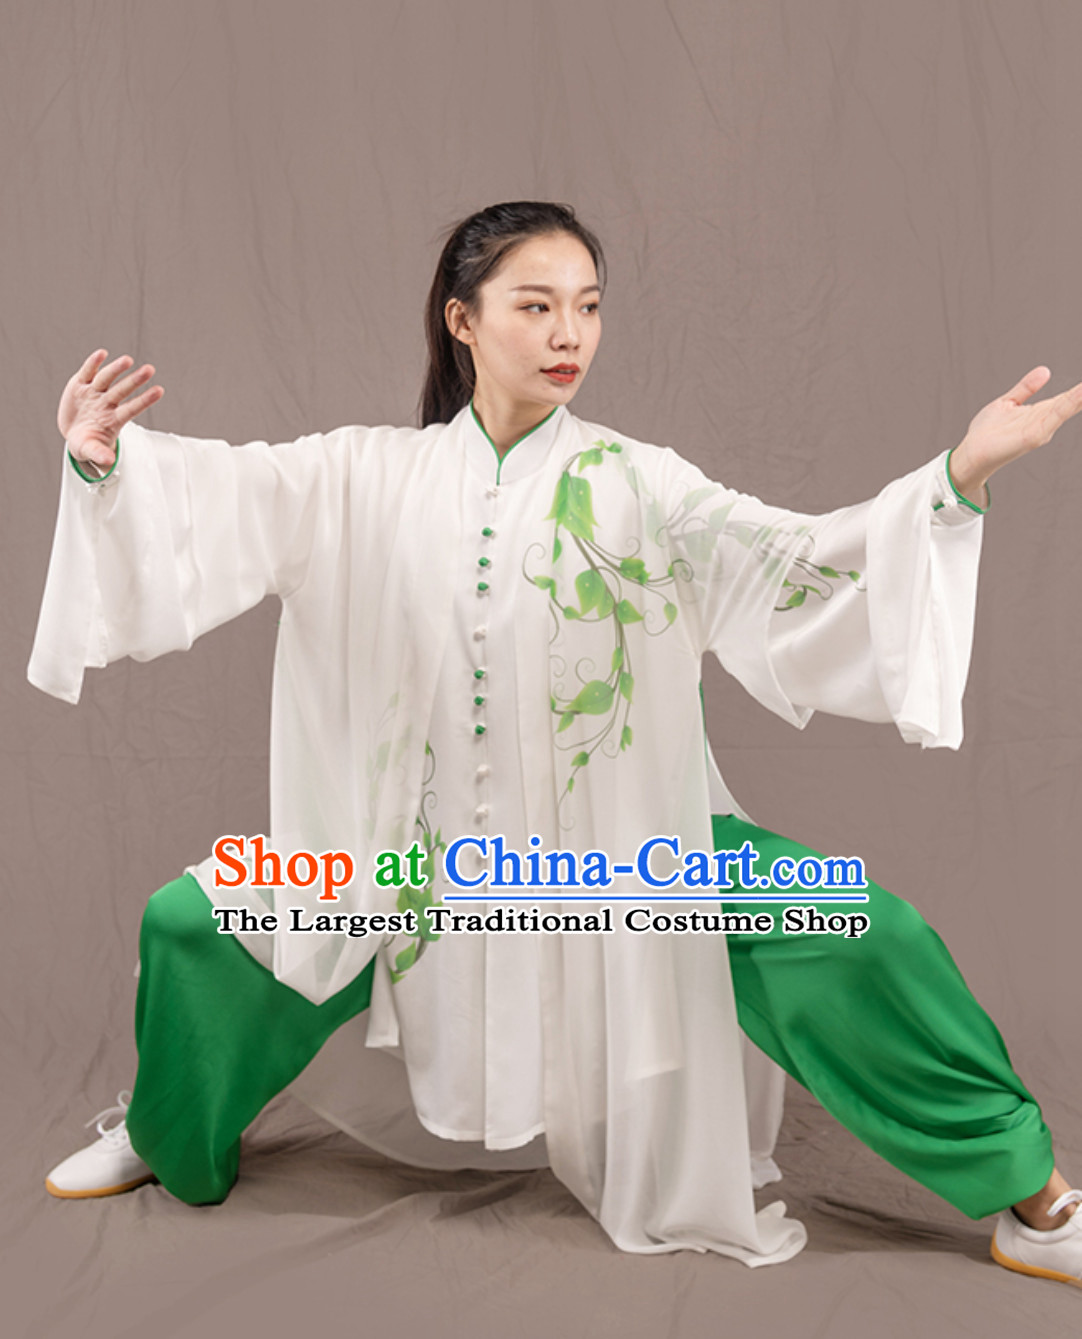 White Top Chinese Traditional Competition Championship Professional Tai Chi Uniforms Taiji Kung Fu Wing Chun Kungfu Tai Ji Sword Gong Fu Master Clothing Suits Clothes Complete Set for Women